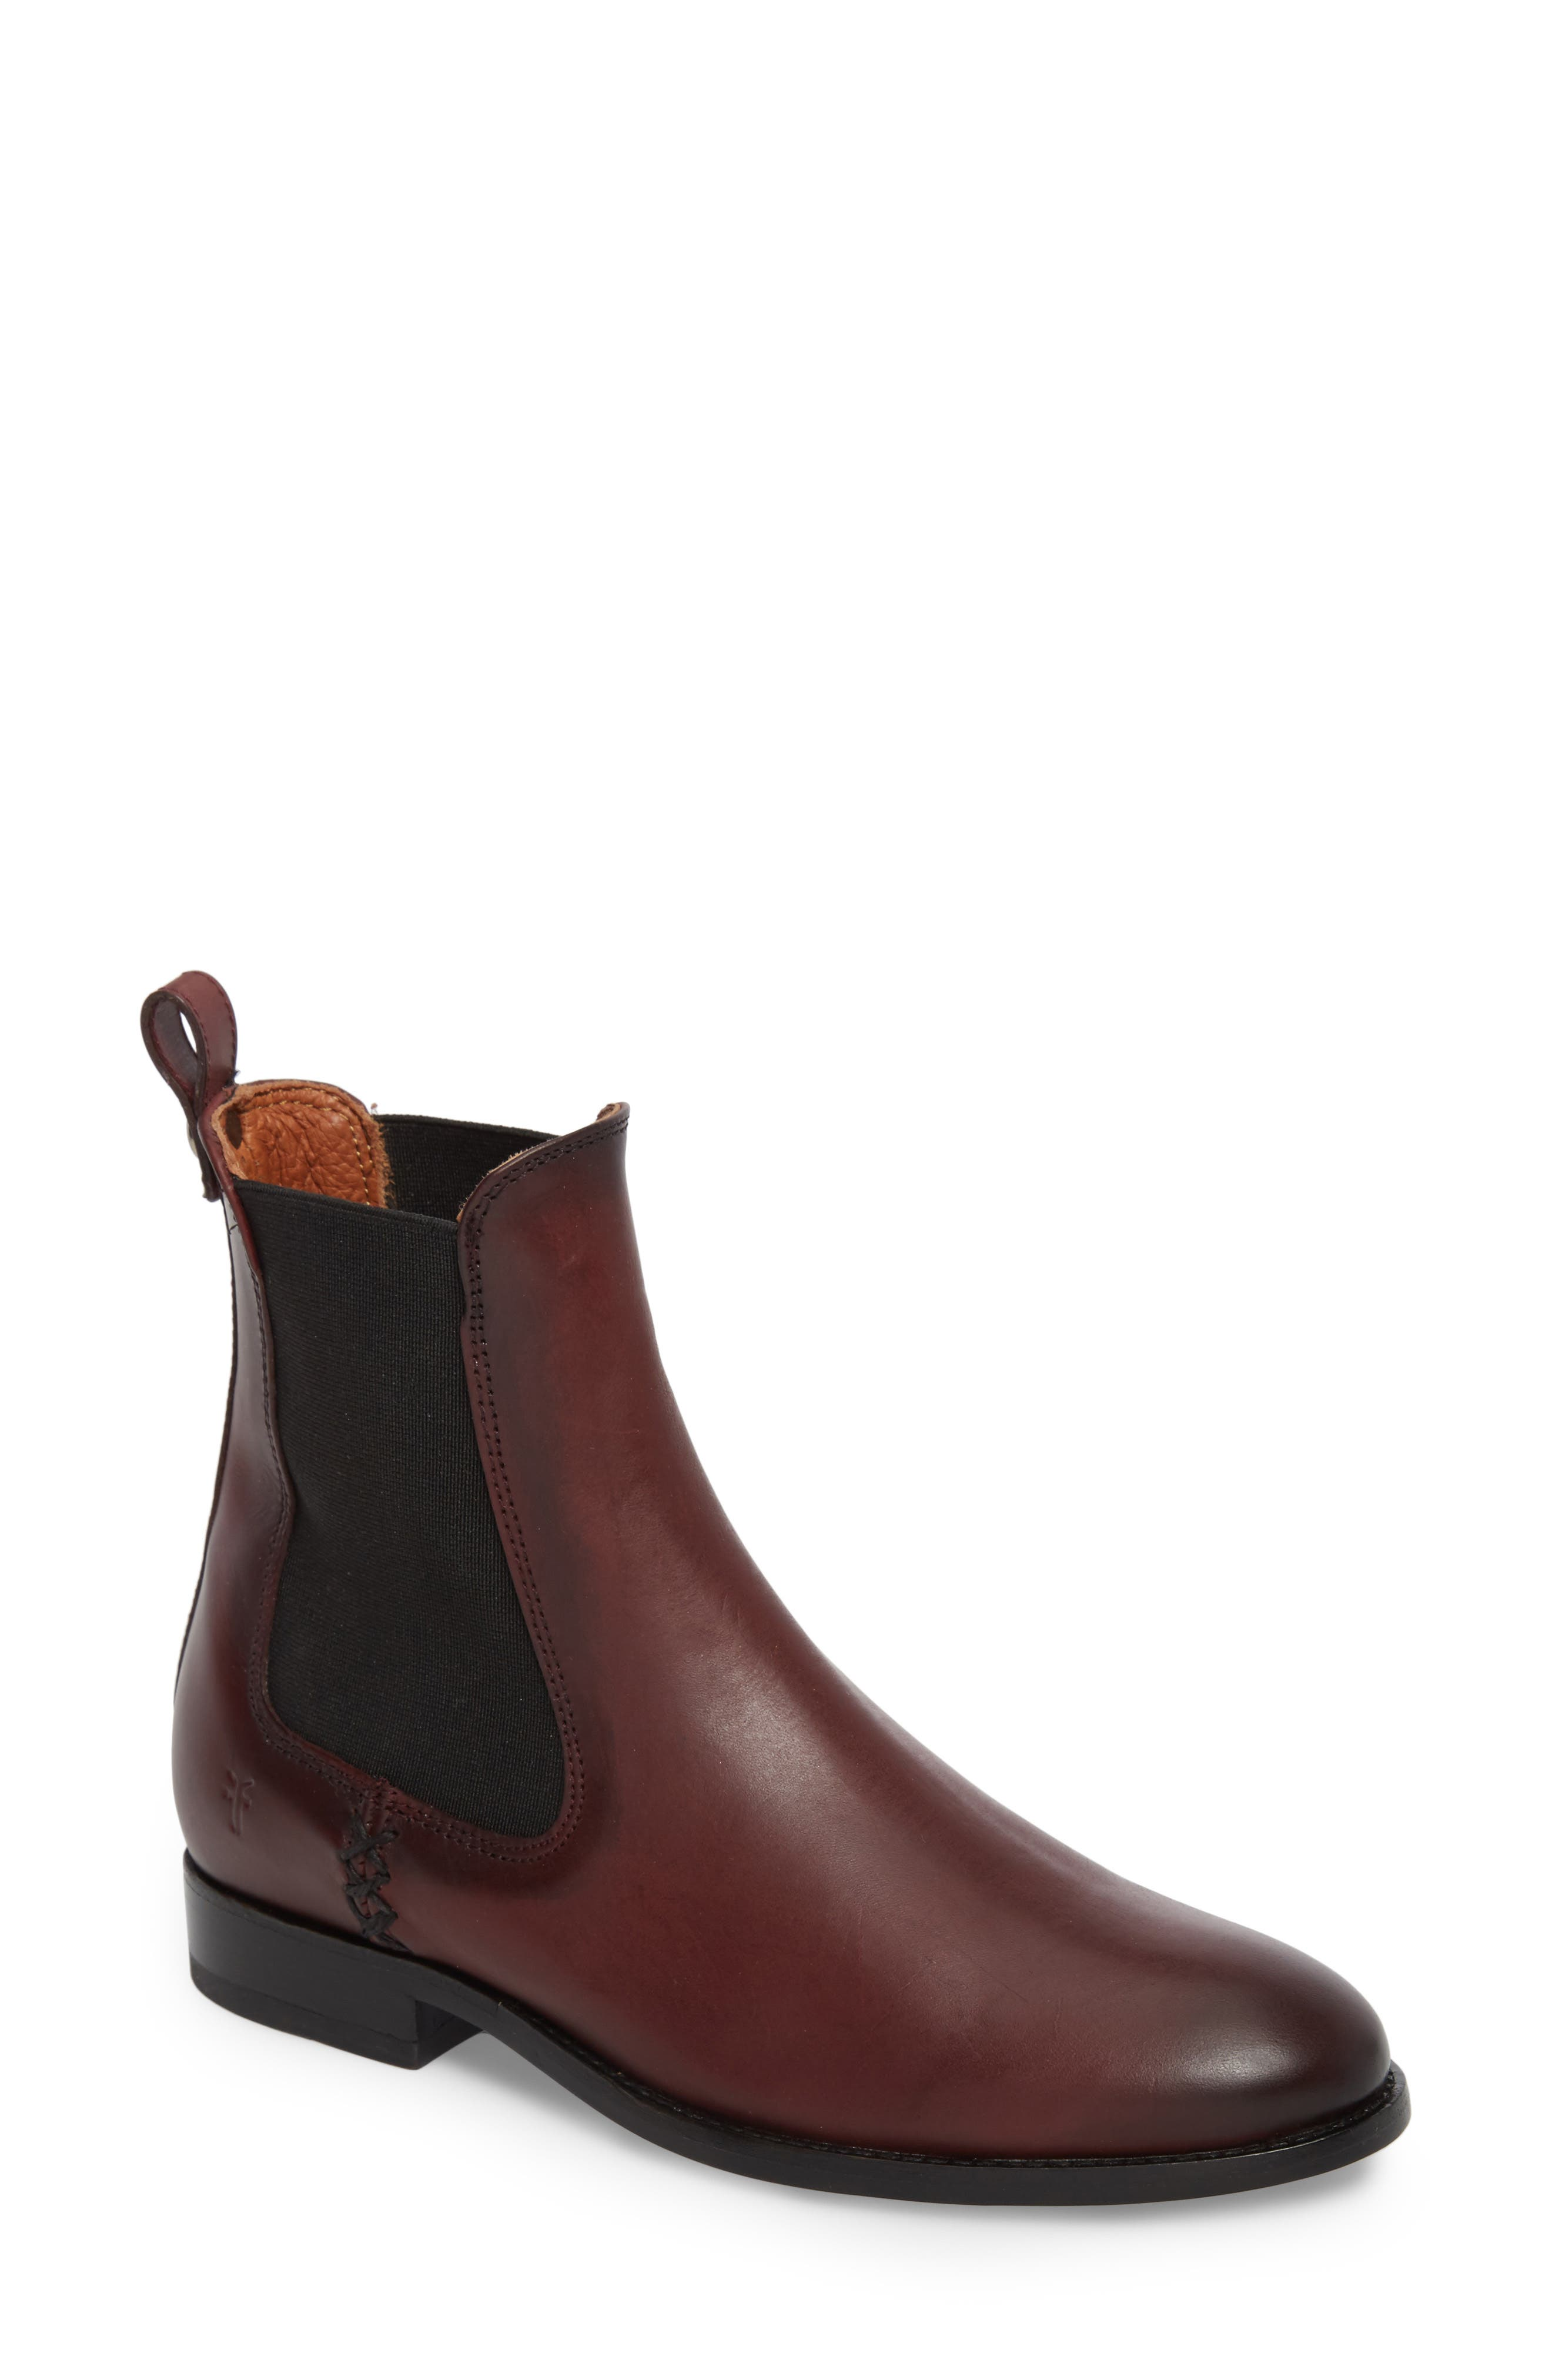 Melissa Chelsea Boot,                         Main,                         color, Wine